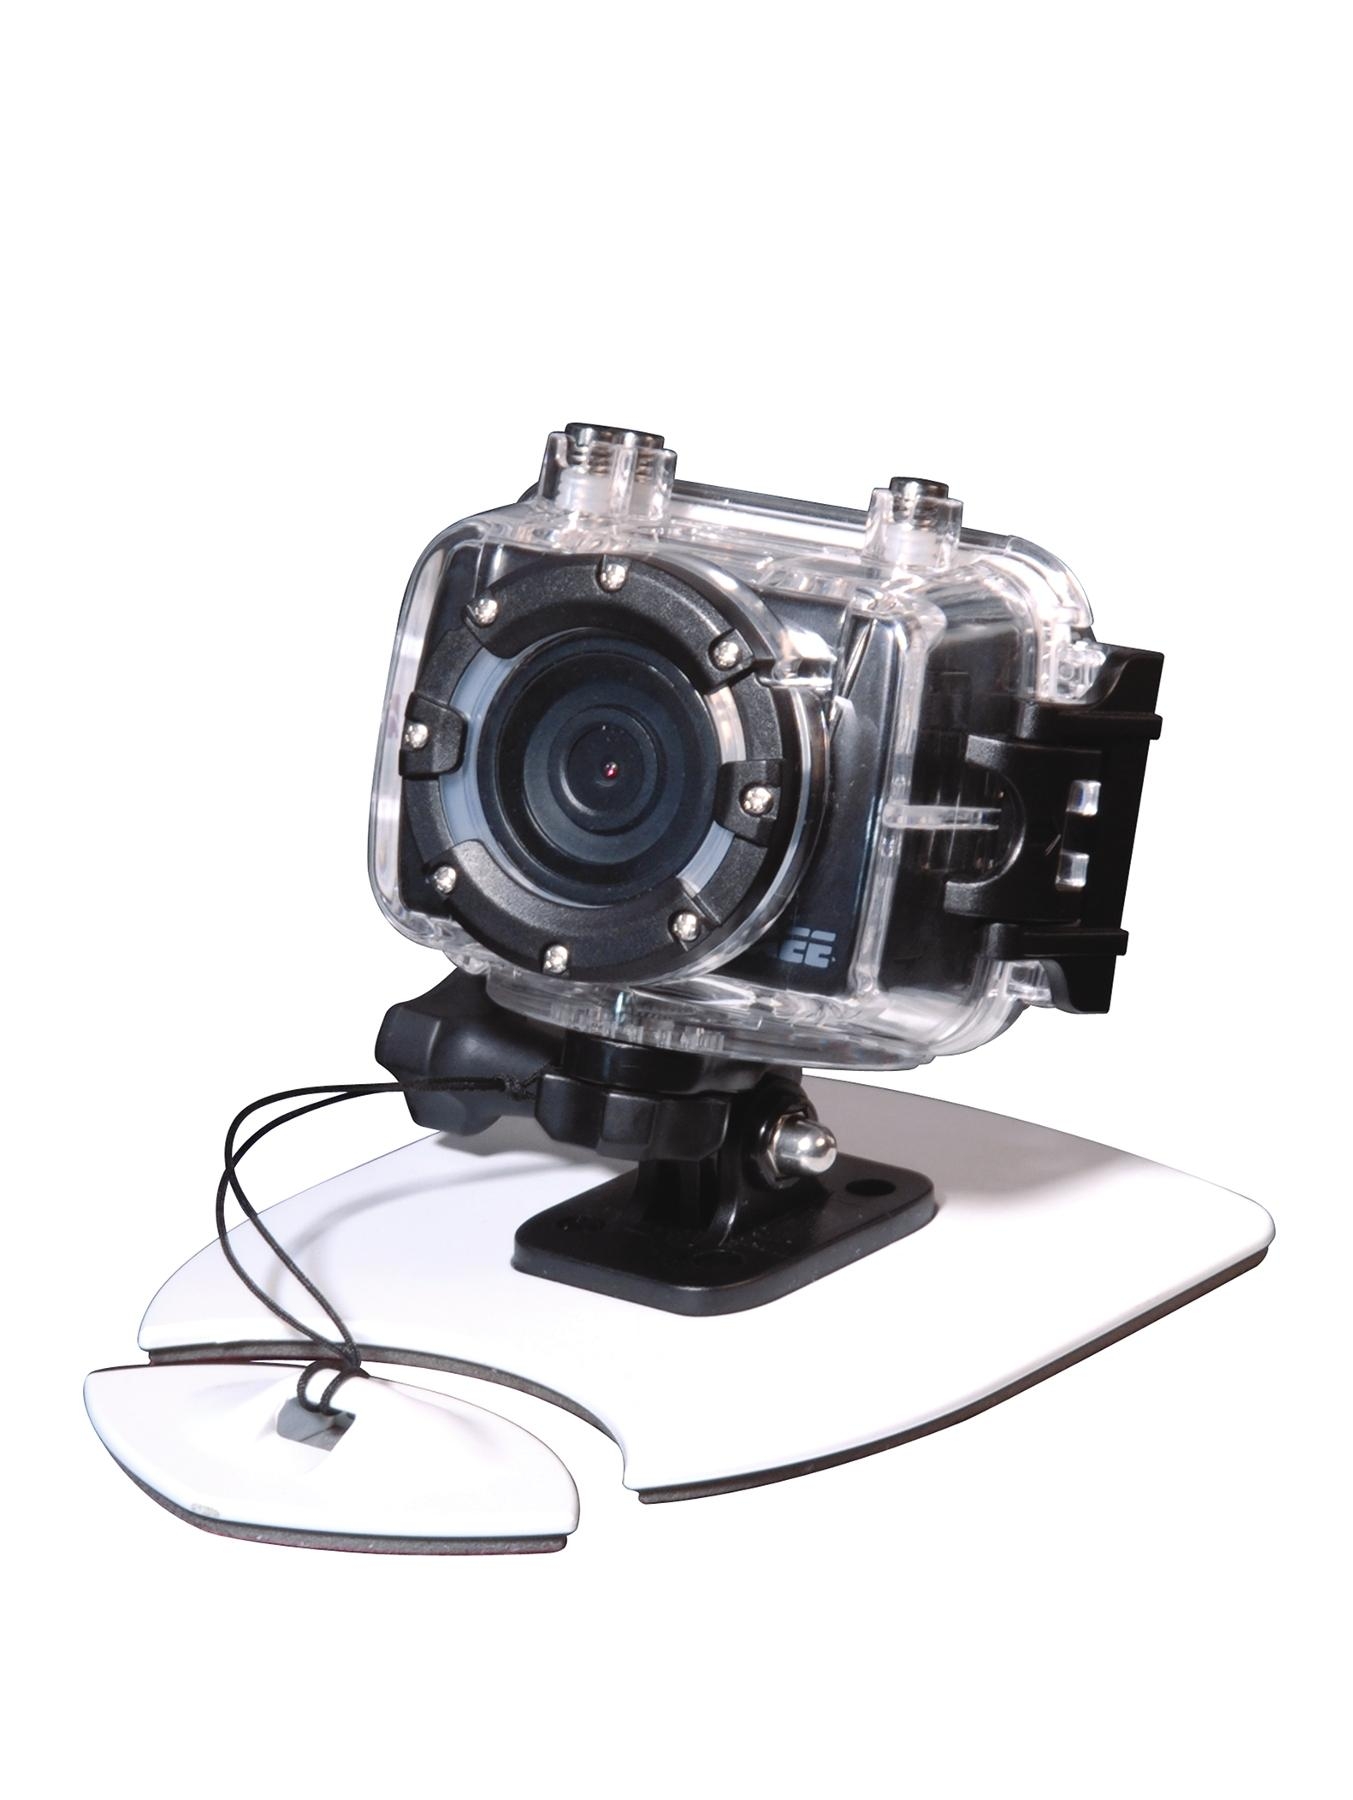 AEE Adhesive Surfboard Mount for MagiCam Video Cameras